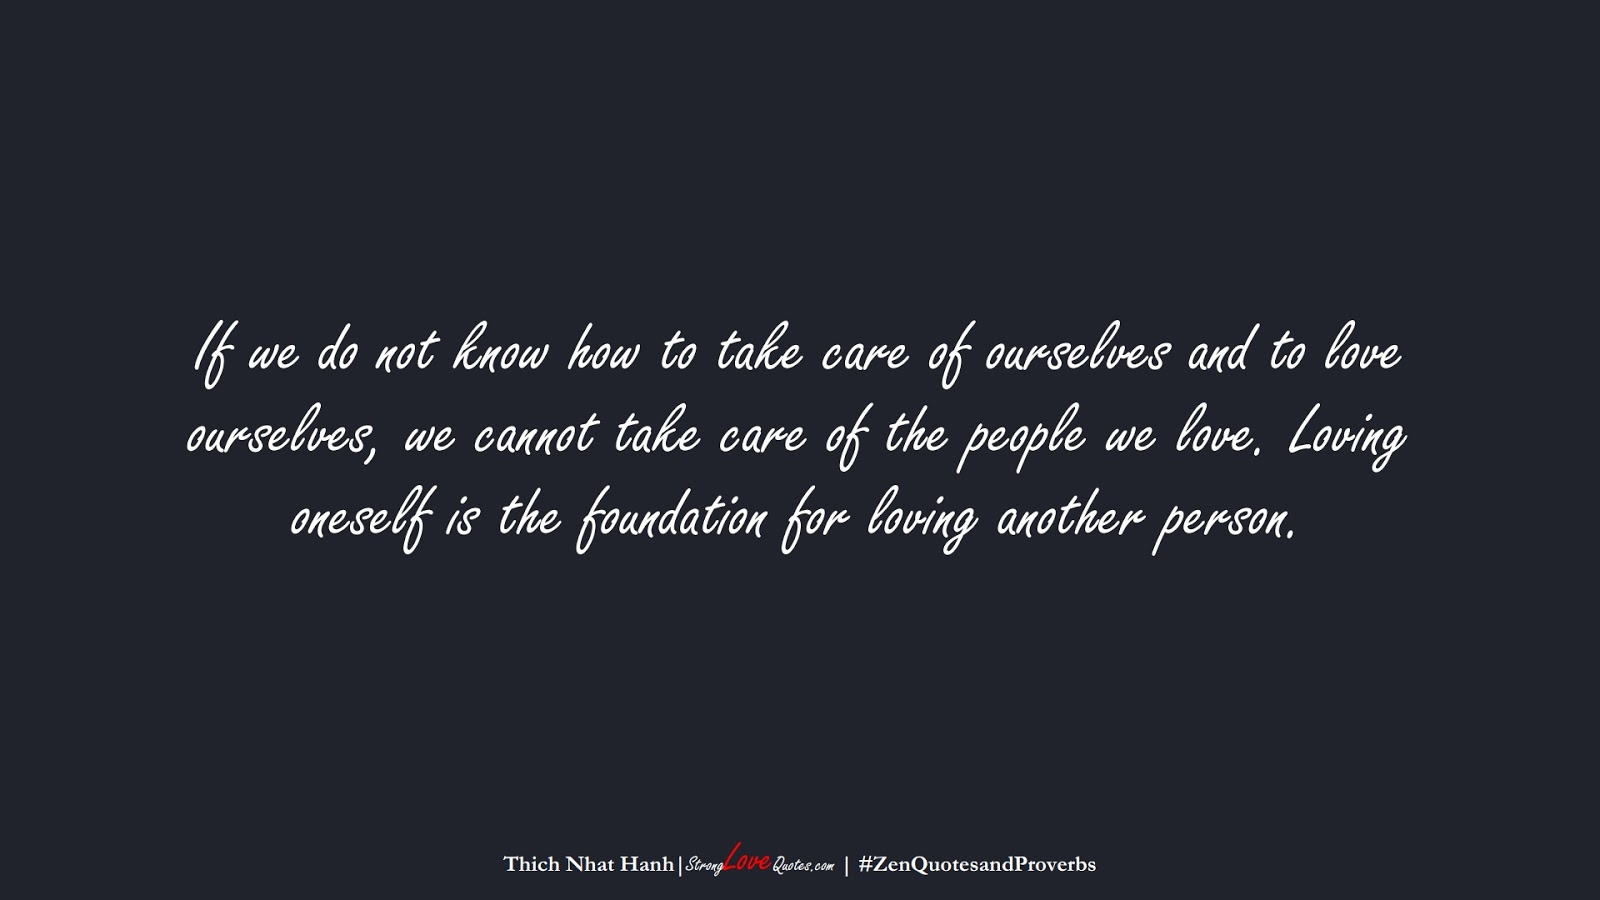 If we do not know how to take care of ourselves and to love ourselves, we cannot take care of the people we love. Loving oneself is the foundation for loving another person. (Thich Nhat Hanh);  #ZenQuotesandProverbs